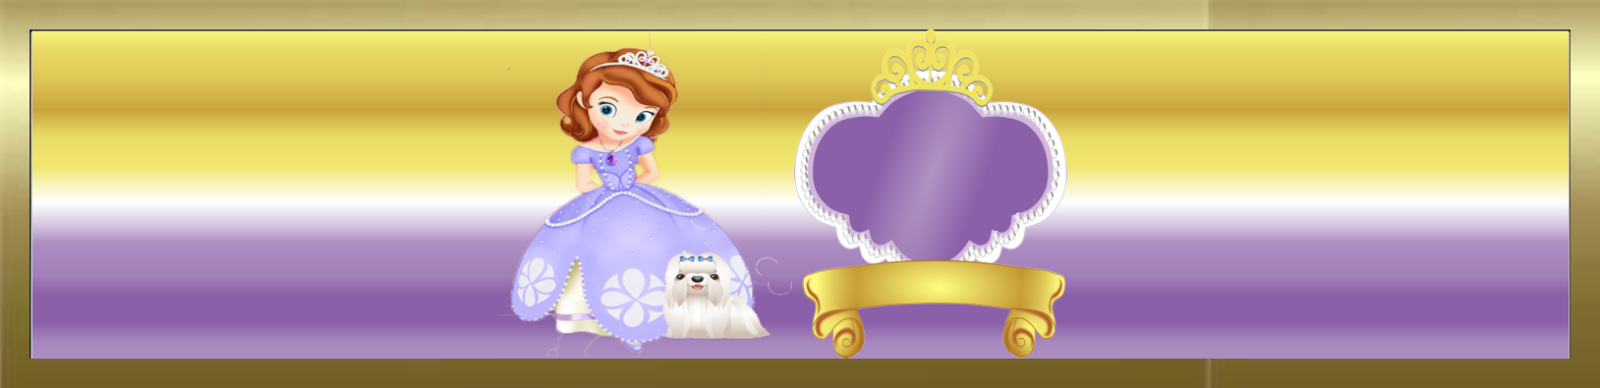 Princess Sofia the First Free Printable Kit. | Is it for PARTIES? Is ...